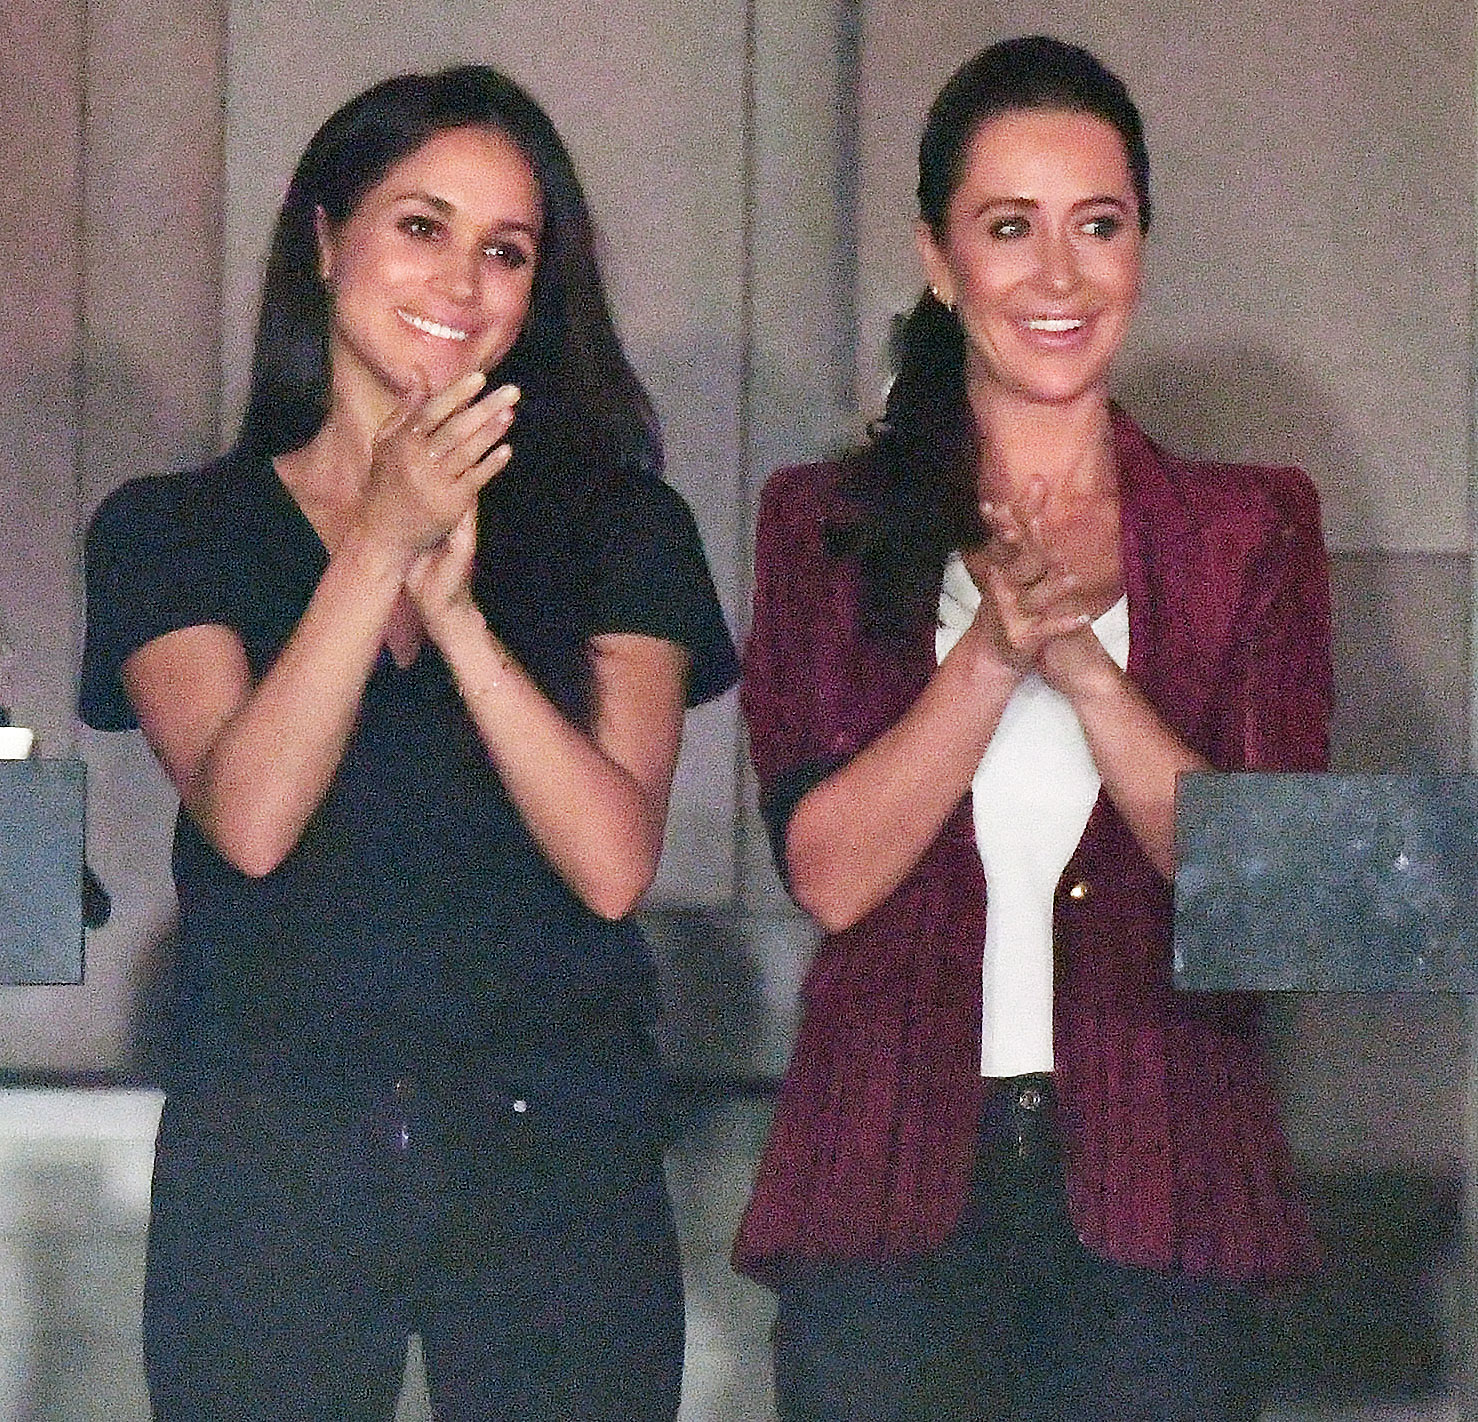 Duchess Meghan's BFF Jessica Mulroney Jokes She'll 'Only Wear Parkas by the Beach' After Being Body-Shamed